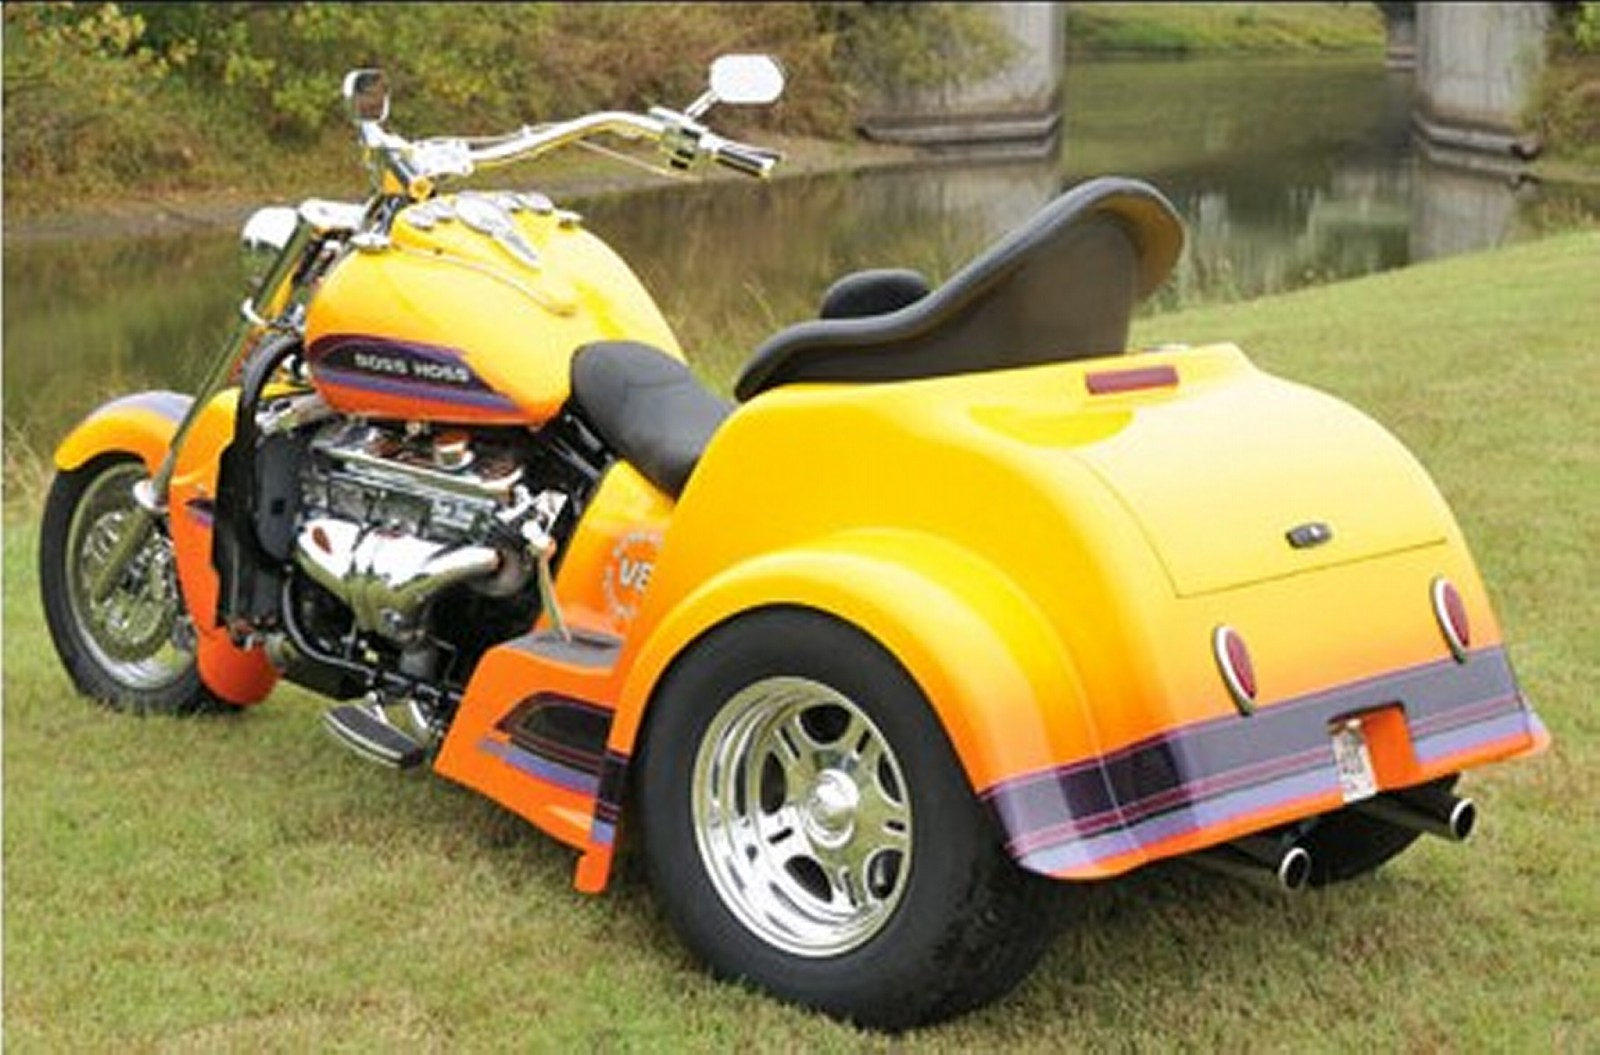 Boss Hog Motorcycle Trikes : Motorcycle pictures boss hoss bhc zz trike